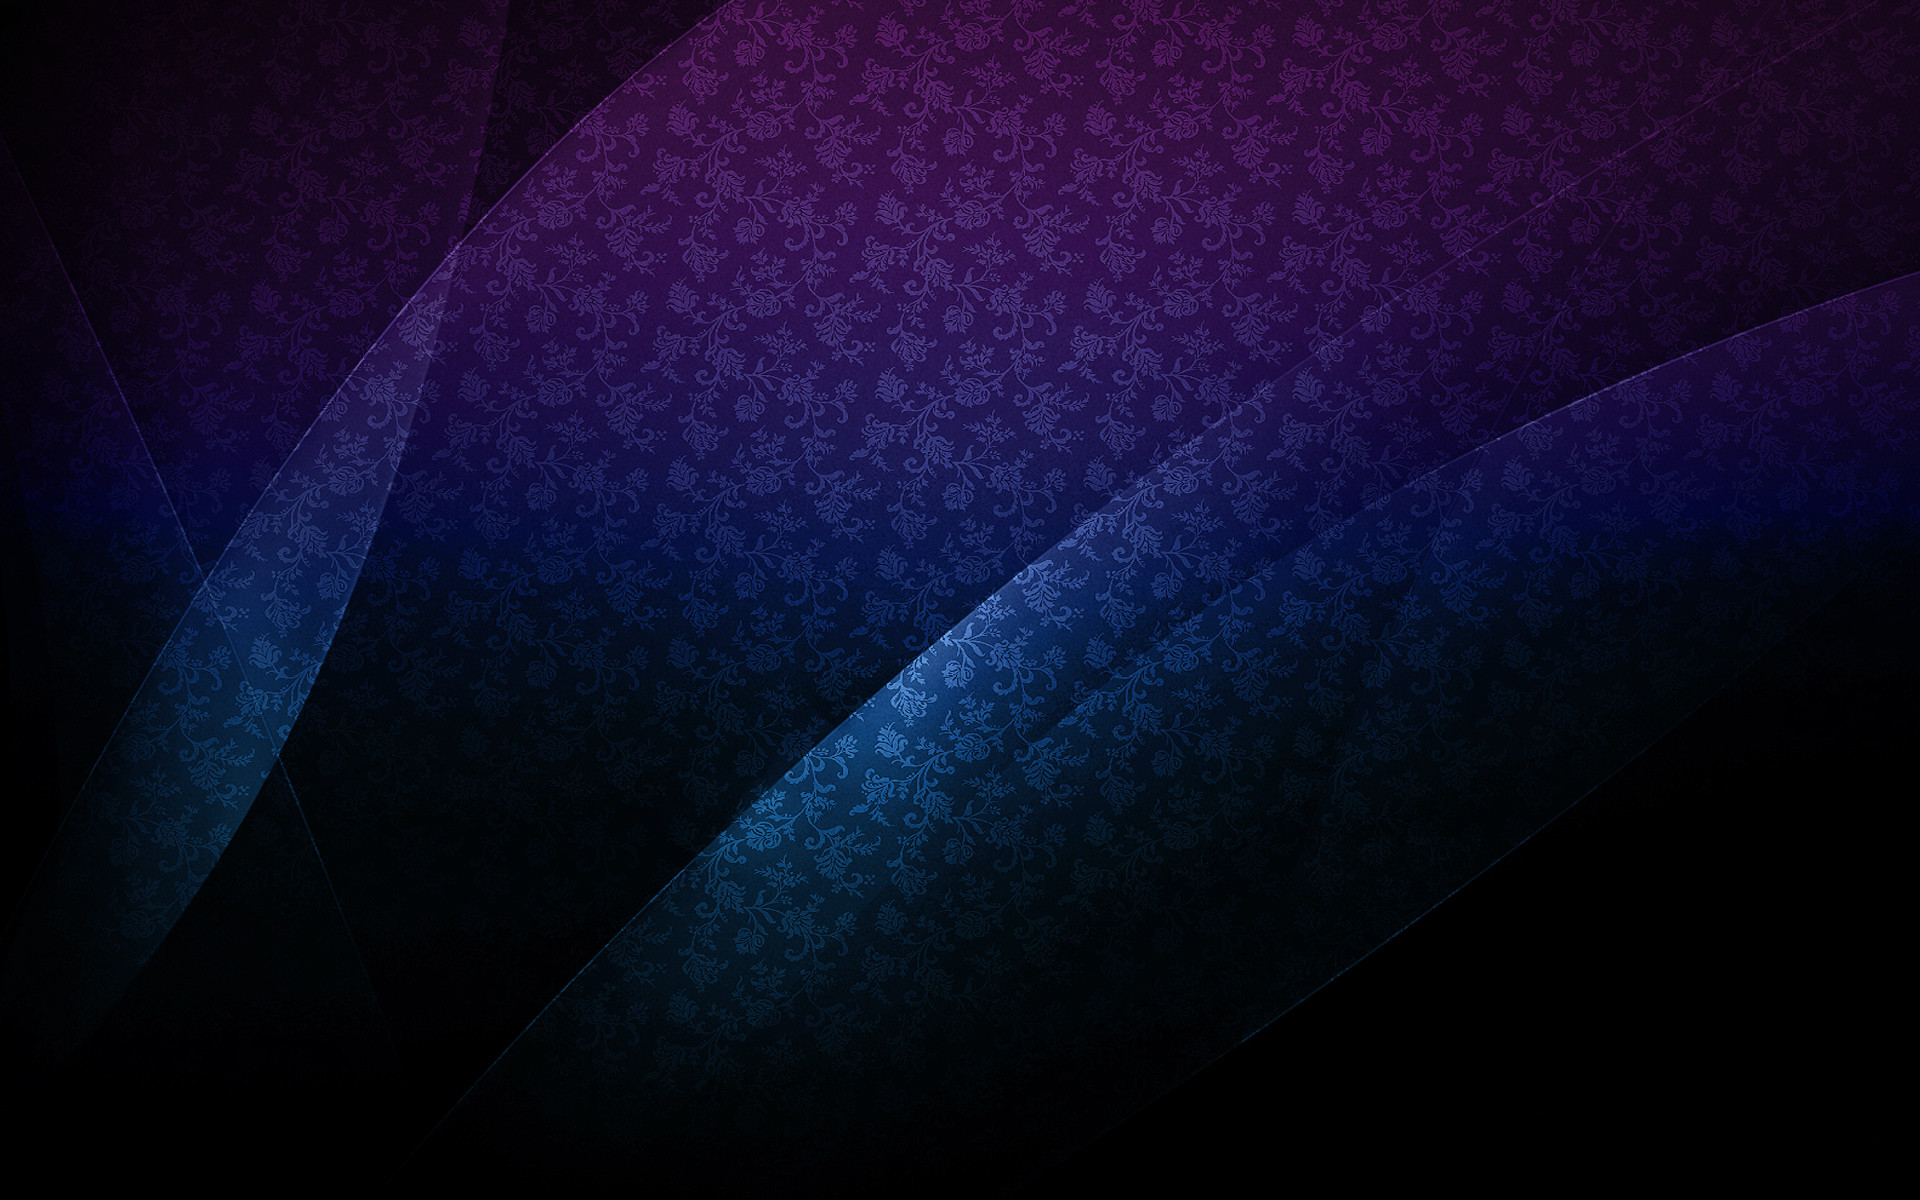 wallpaper, texture, textured, blue, purple, wallpapers, images